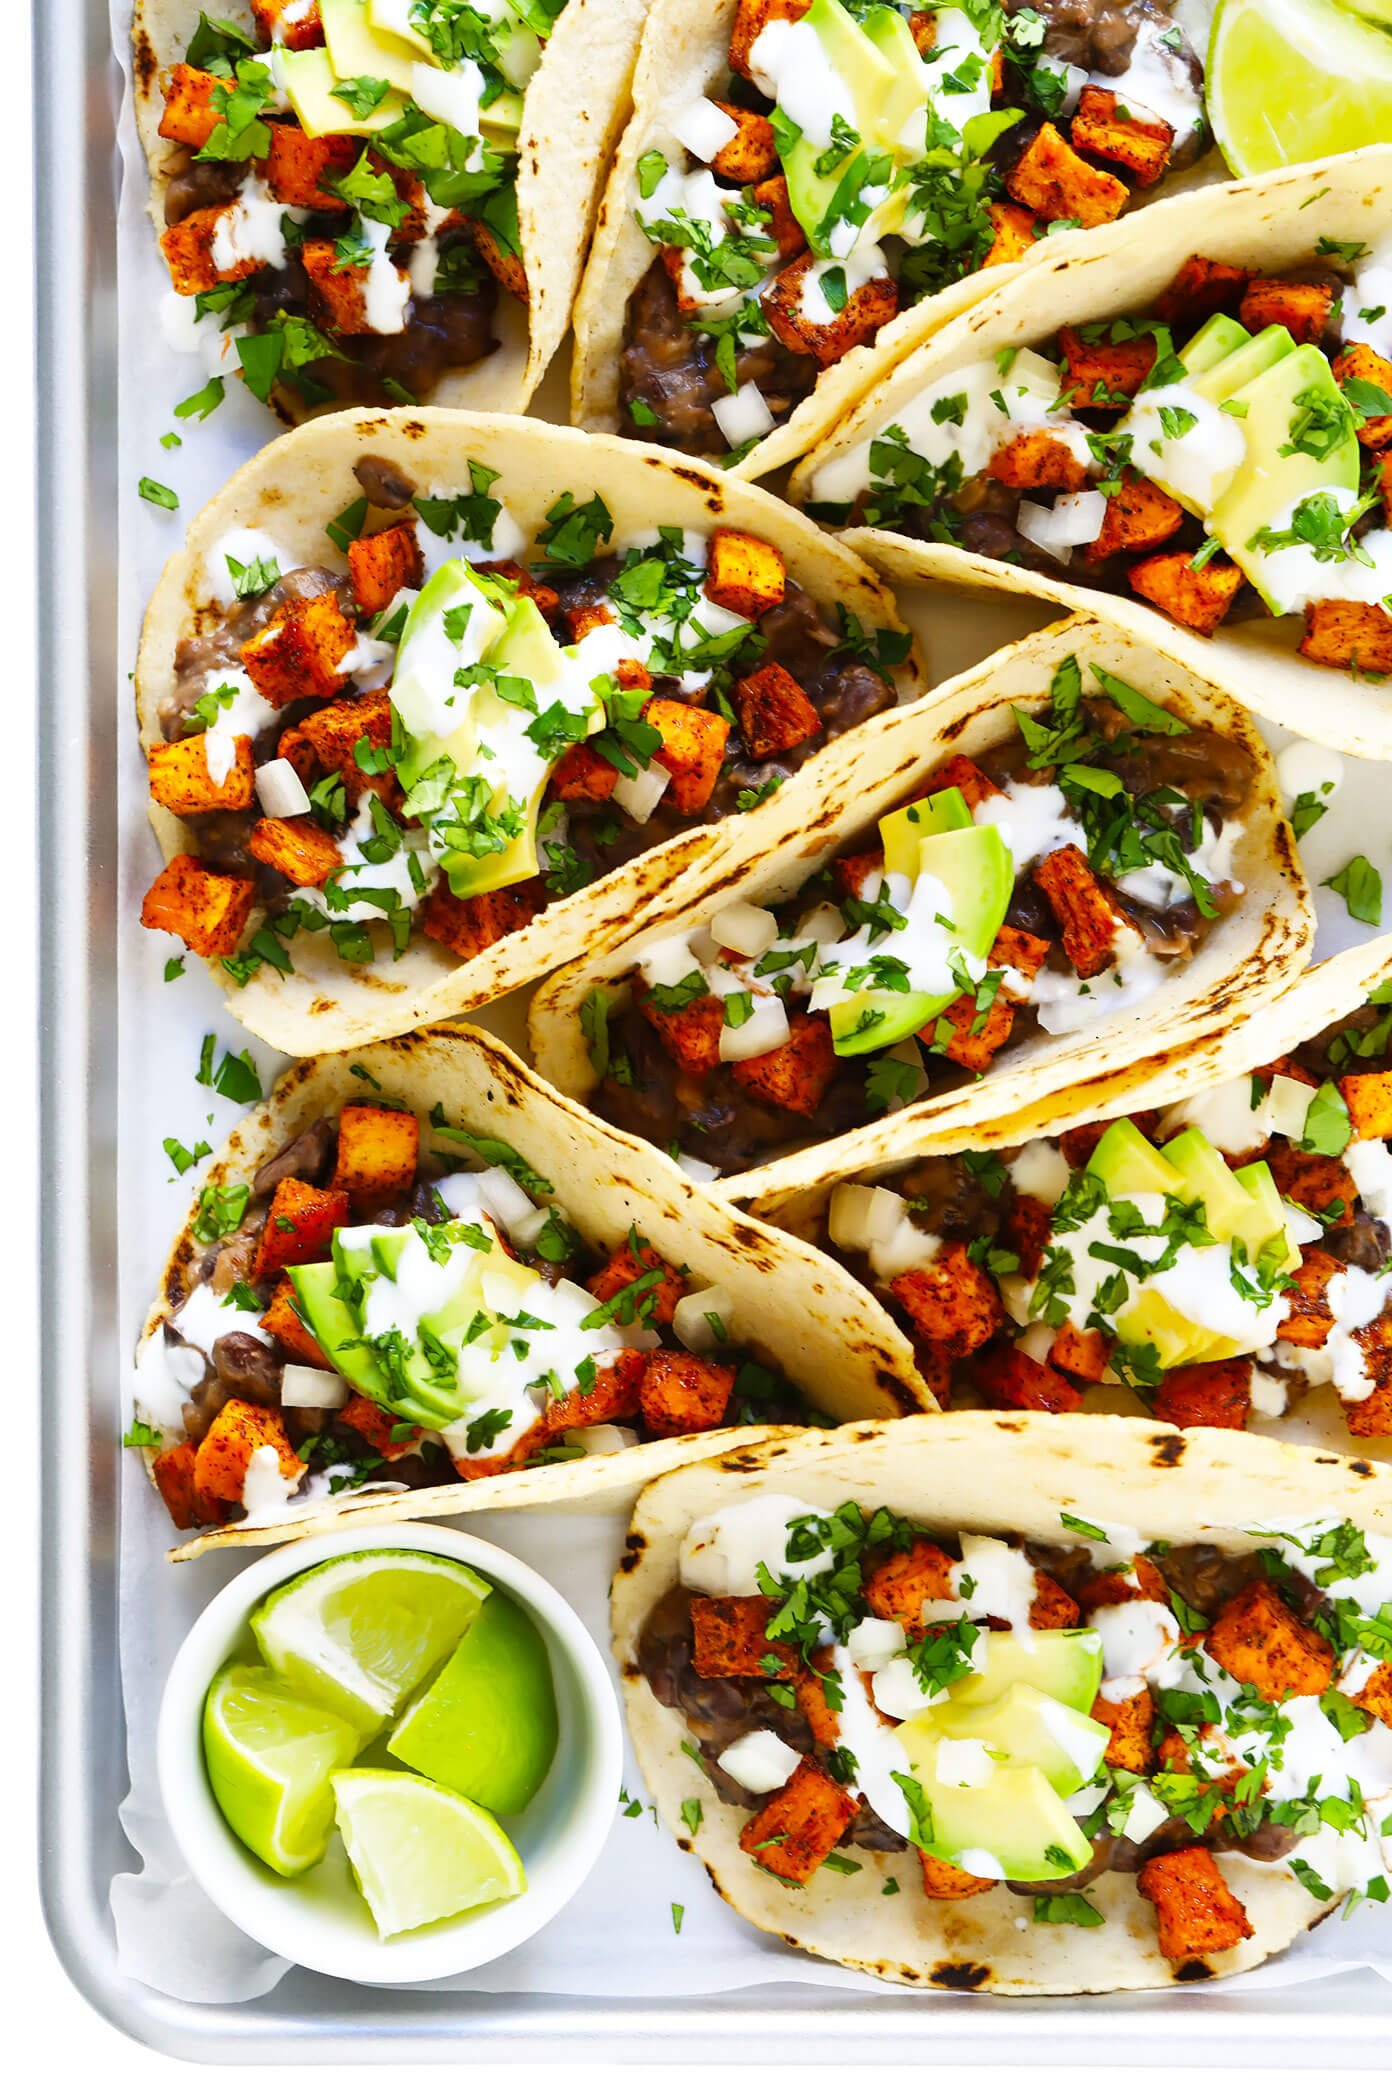 Sweet Potato Black Bean Tacos with Homemade Corn Tortillas